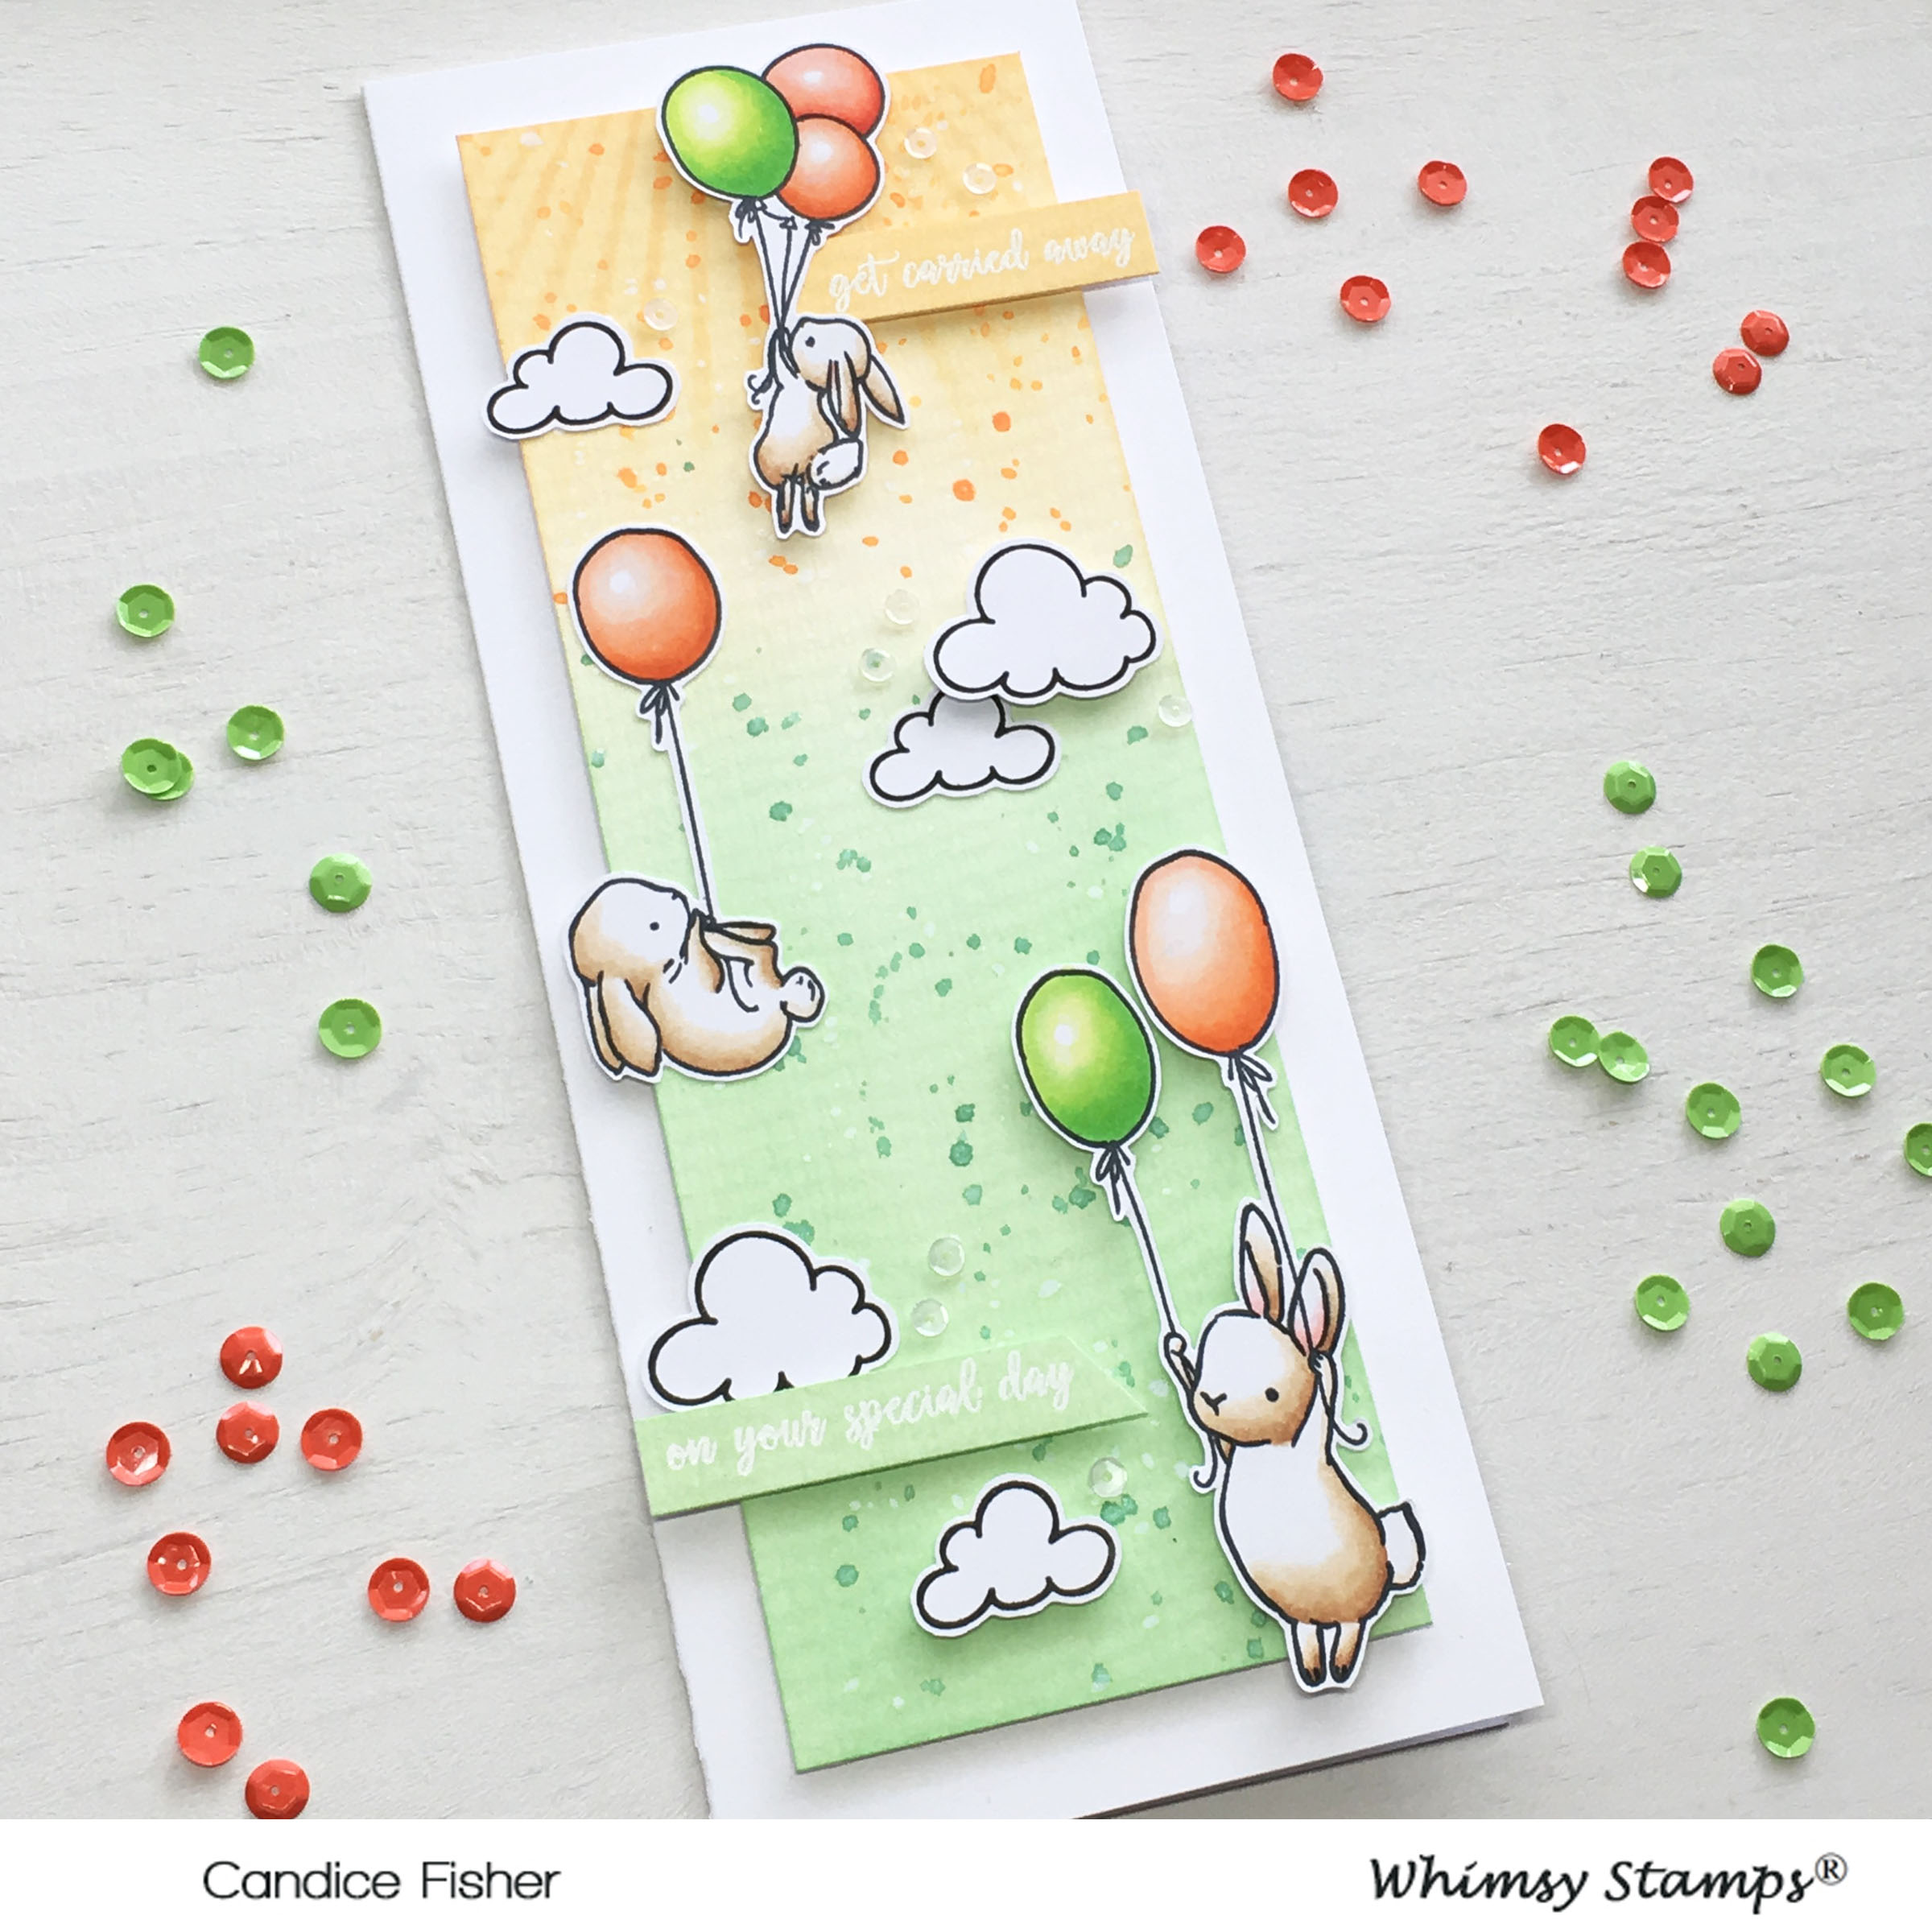 GD whimsy stamps card 2 side